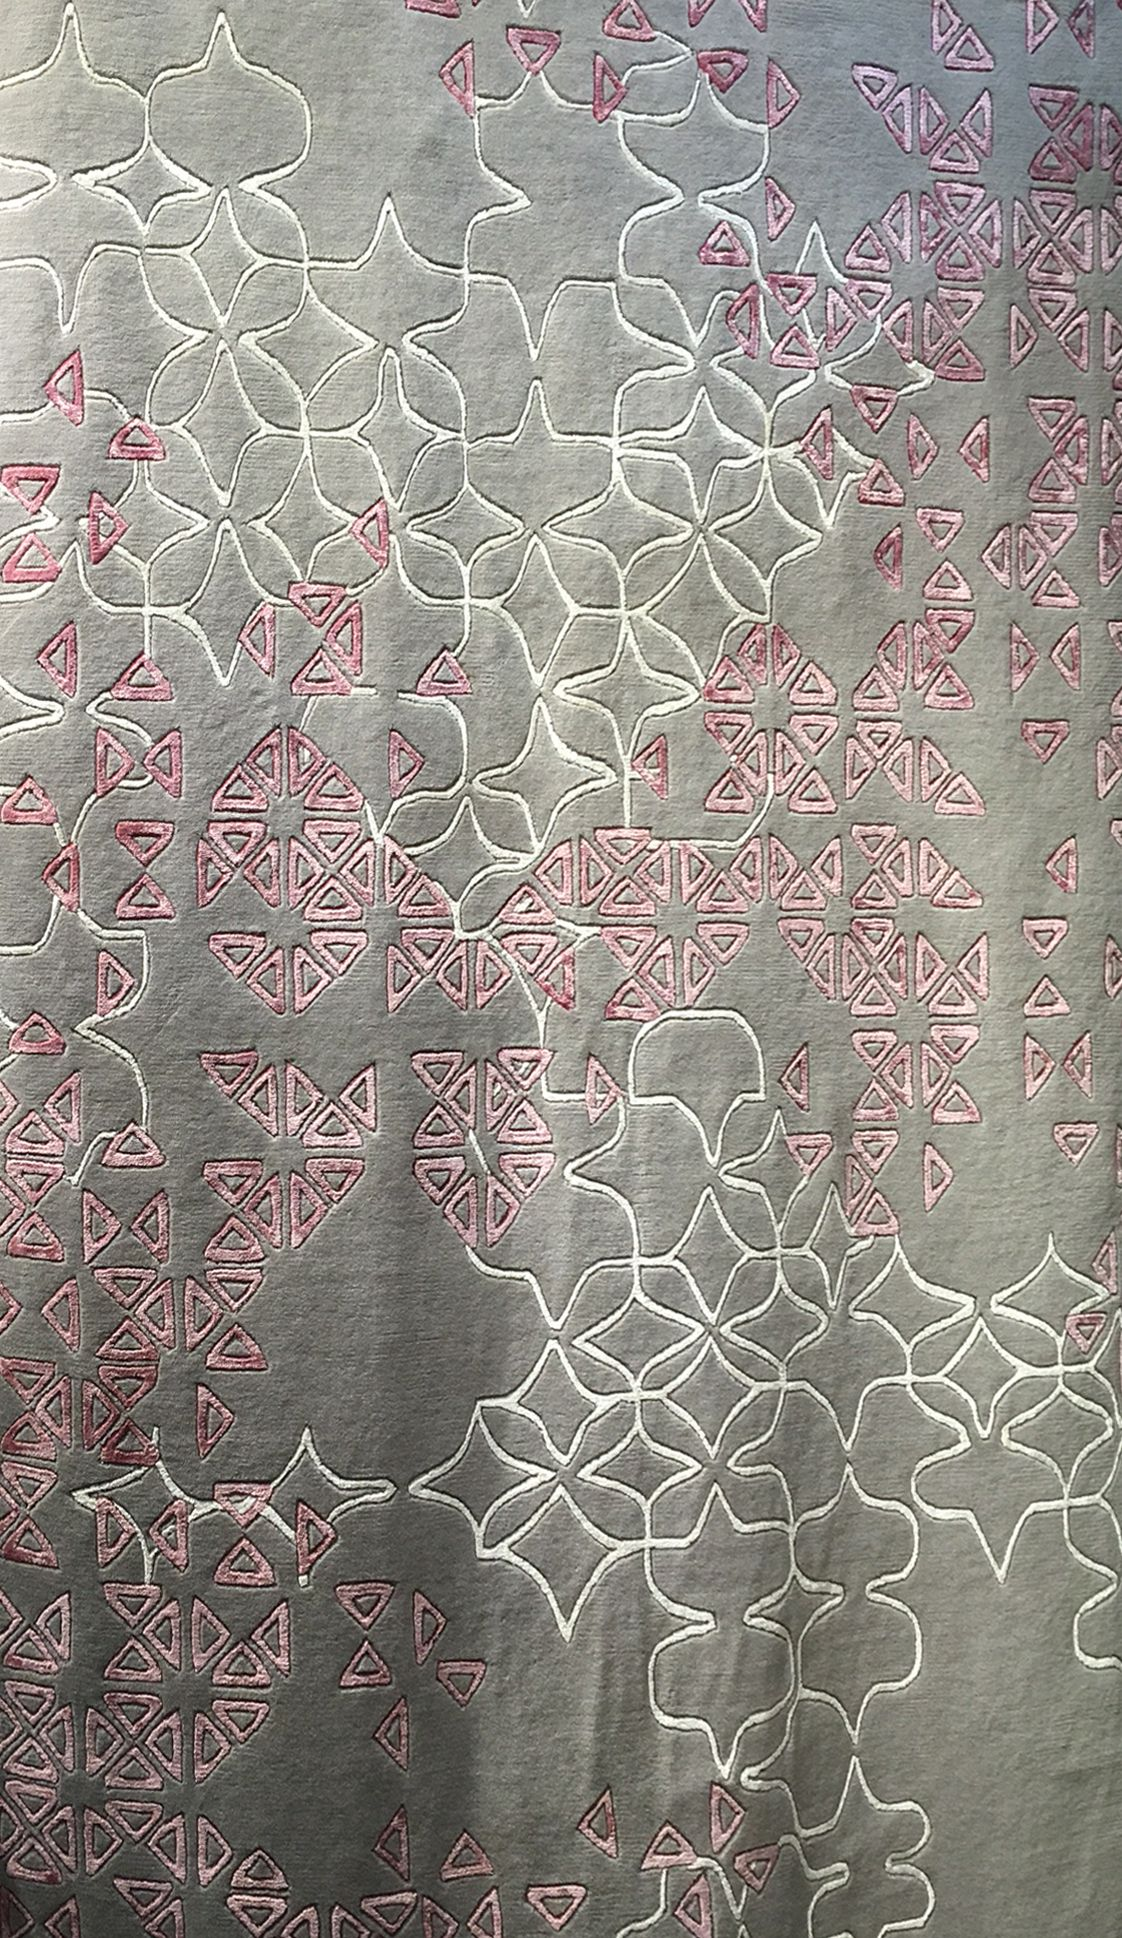 Pin By Tina Gu On Ffe 地毯 Patterned Carpet Textured